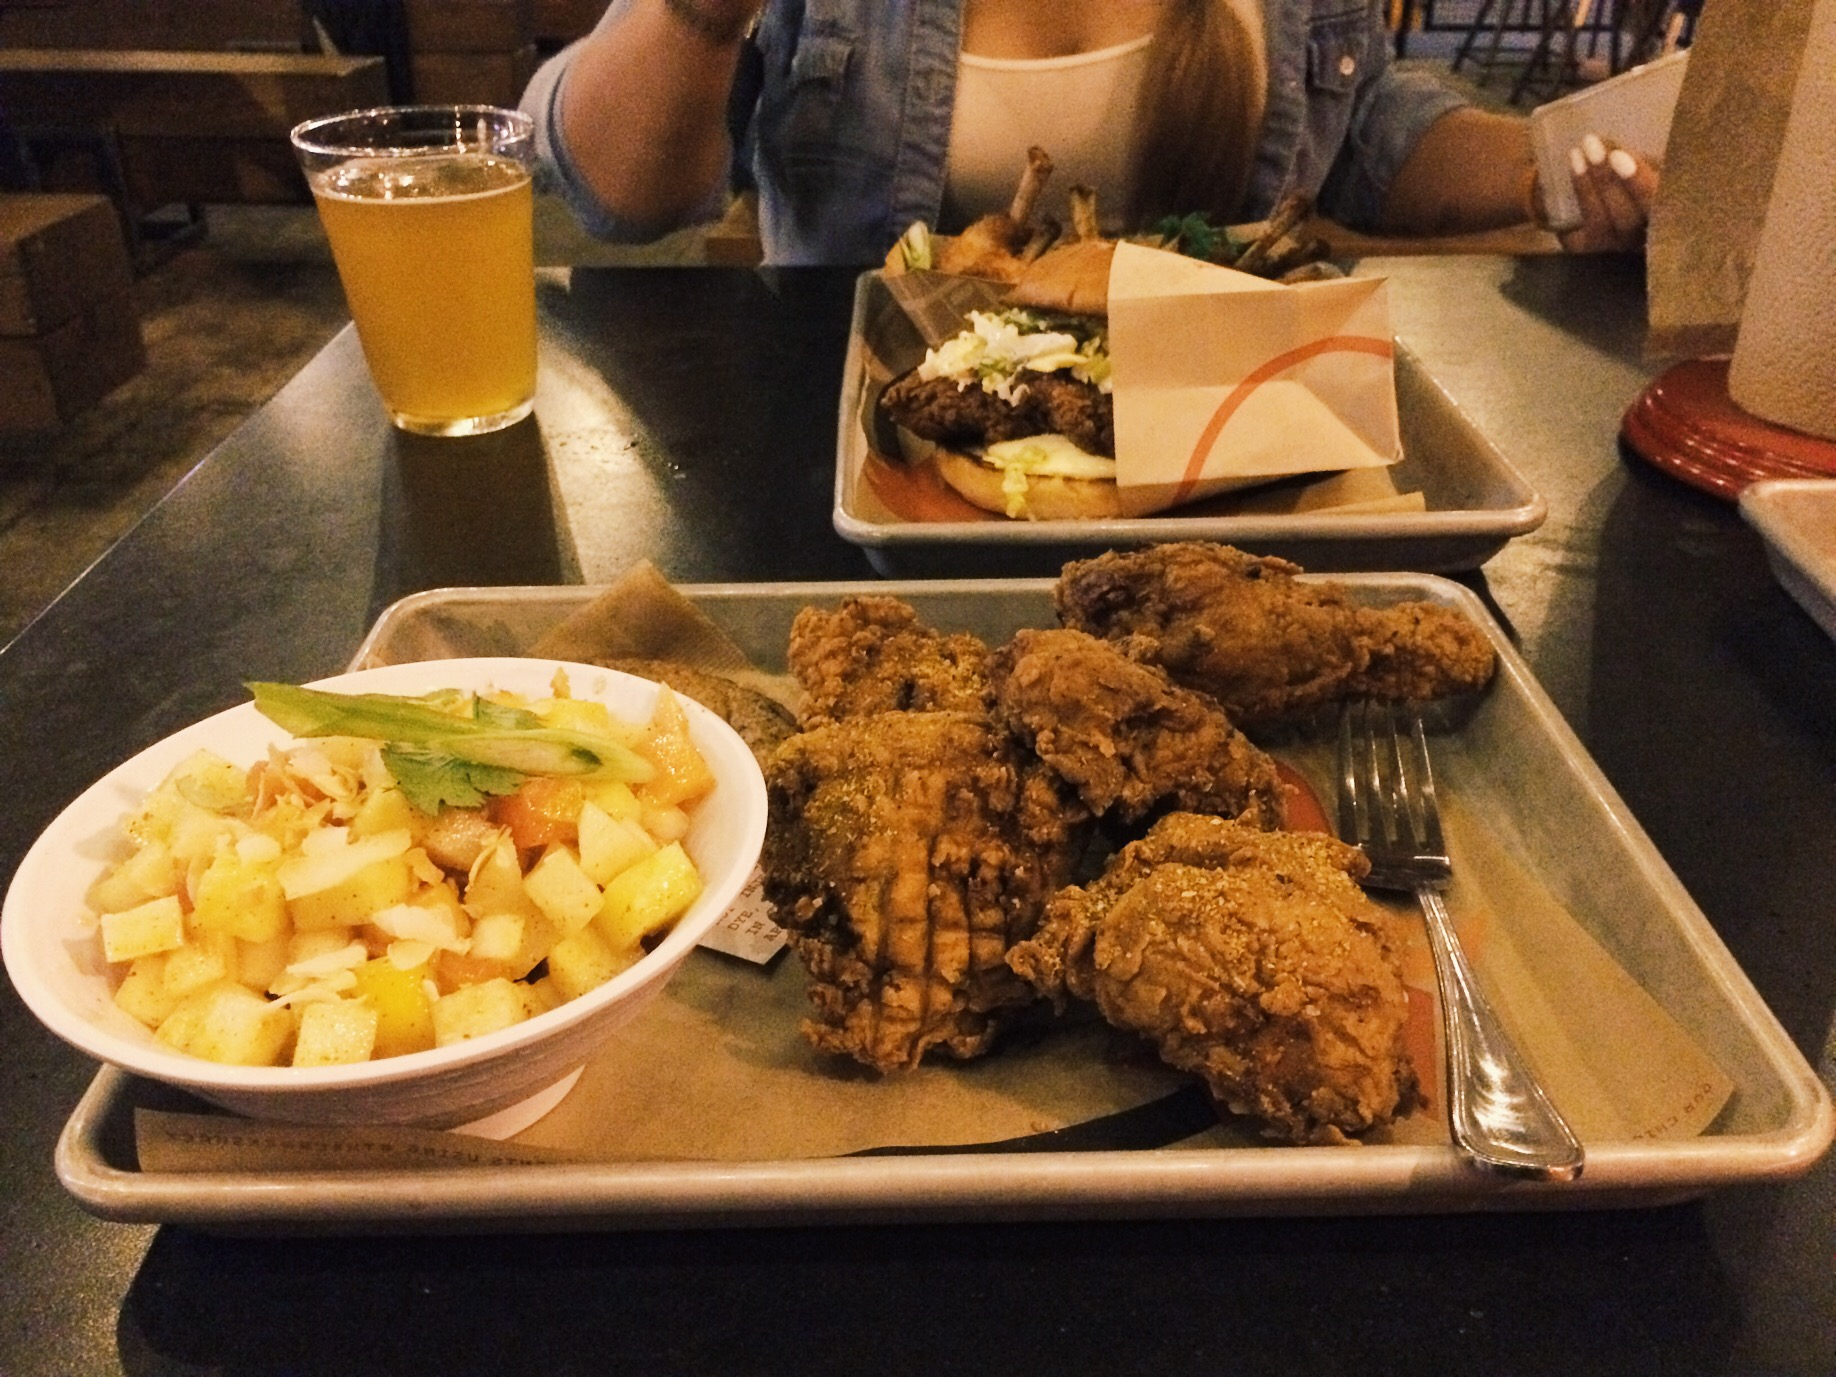 Border Slaw and 5 Piece Fried Chicken. I hate slaw but this was not your typical slaw. It has papaya and mango and a few other shit that taste pretty good. Mild fruity flavor.